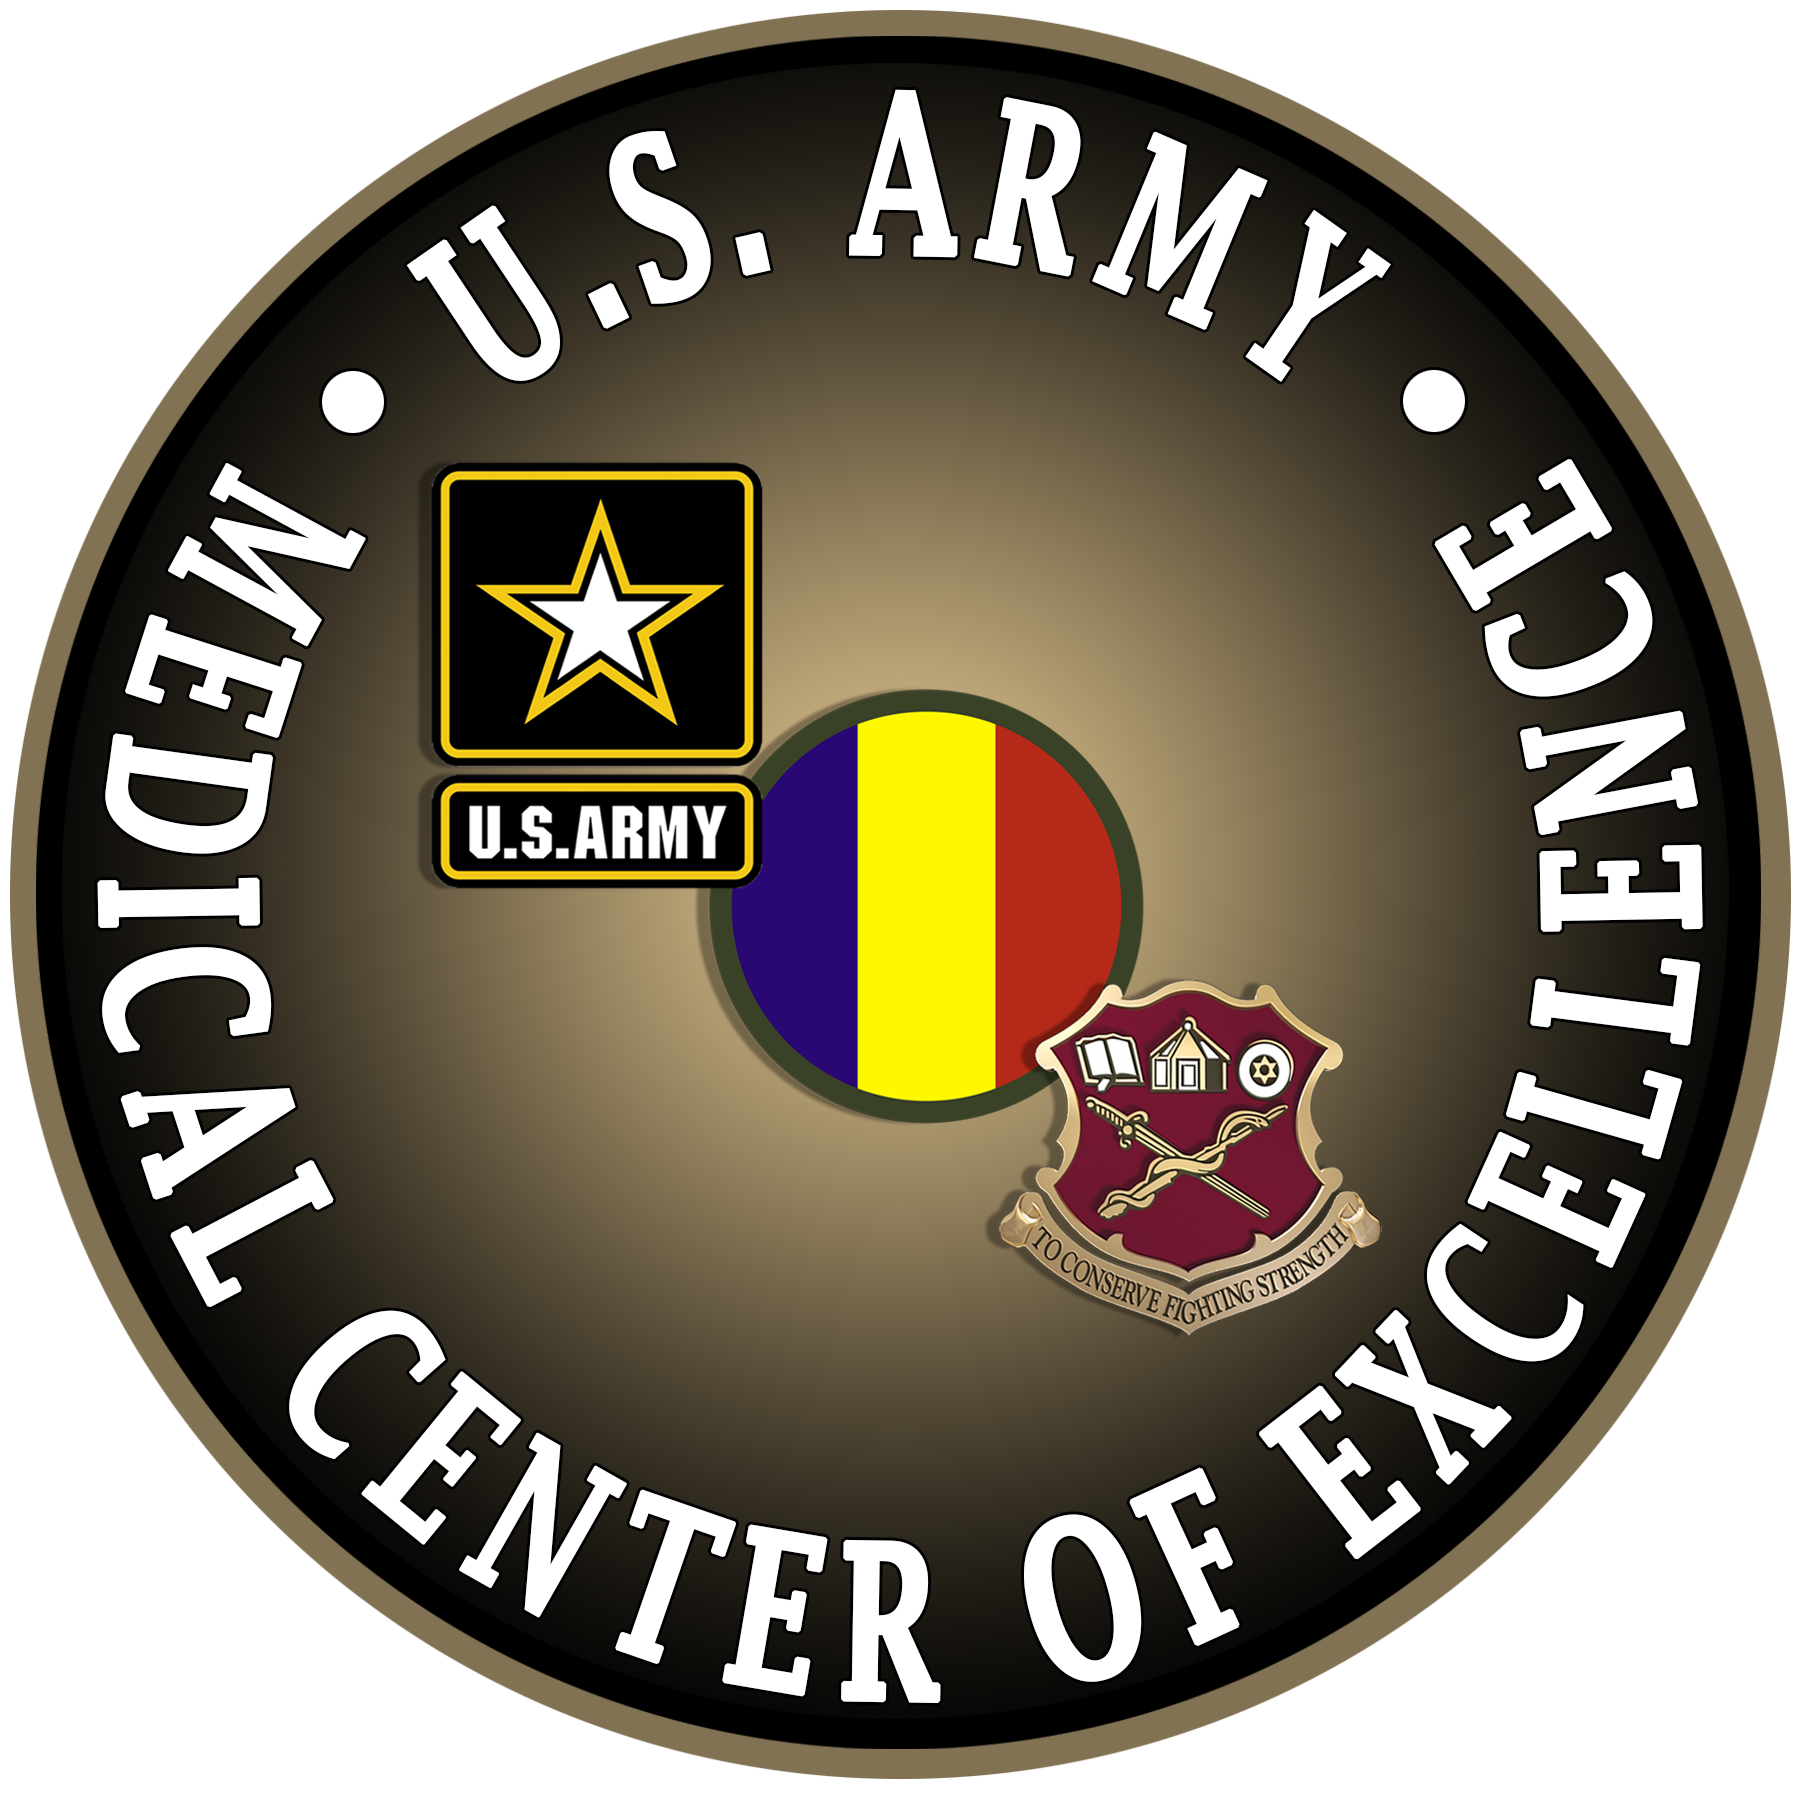 US Army Medical Center of Excellence